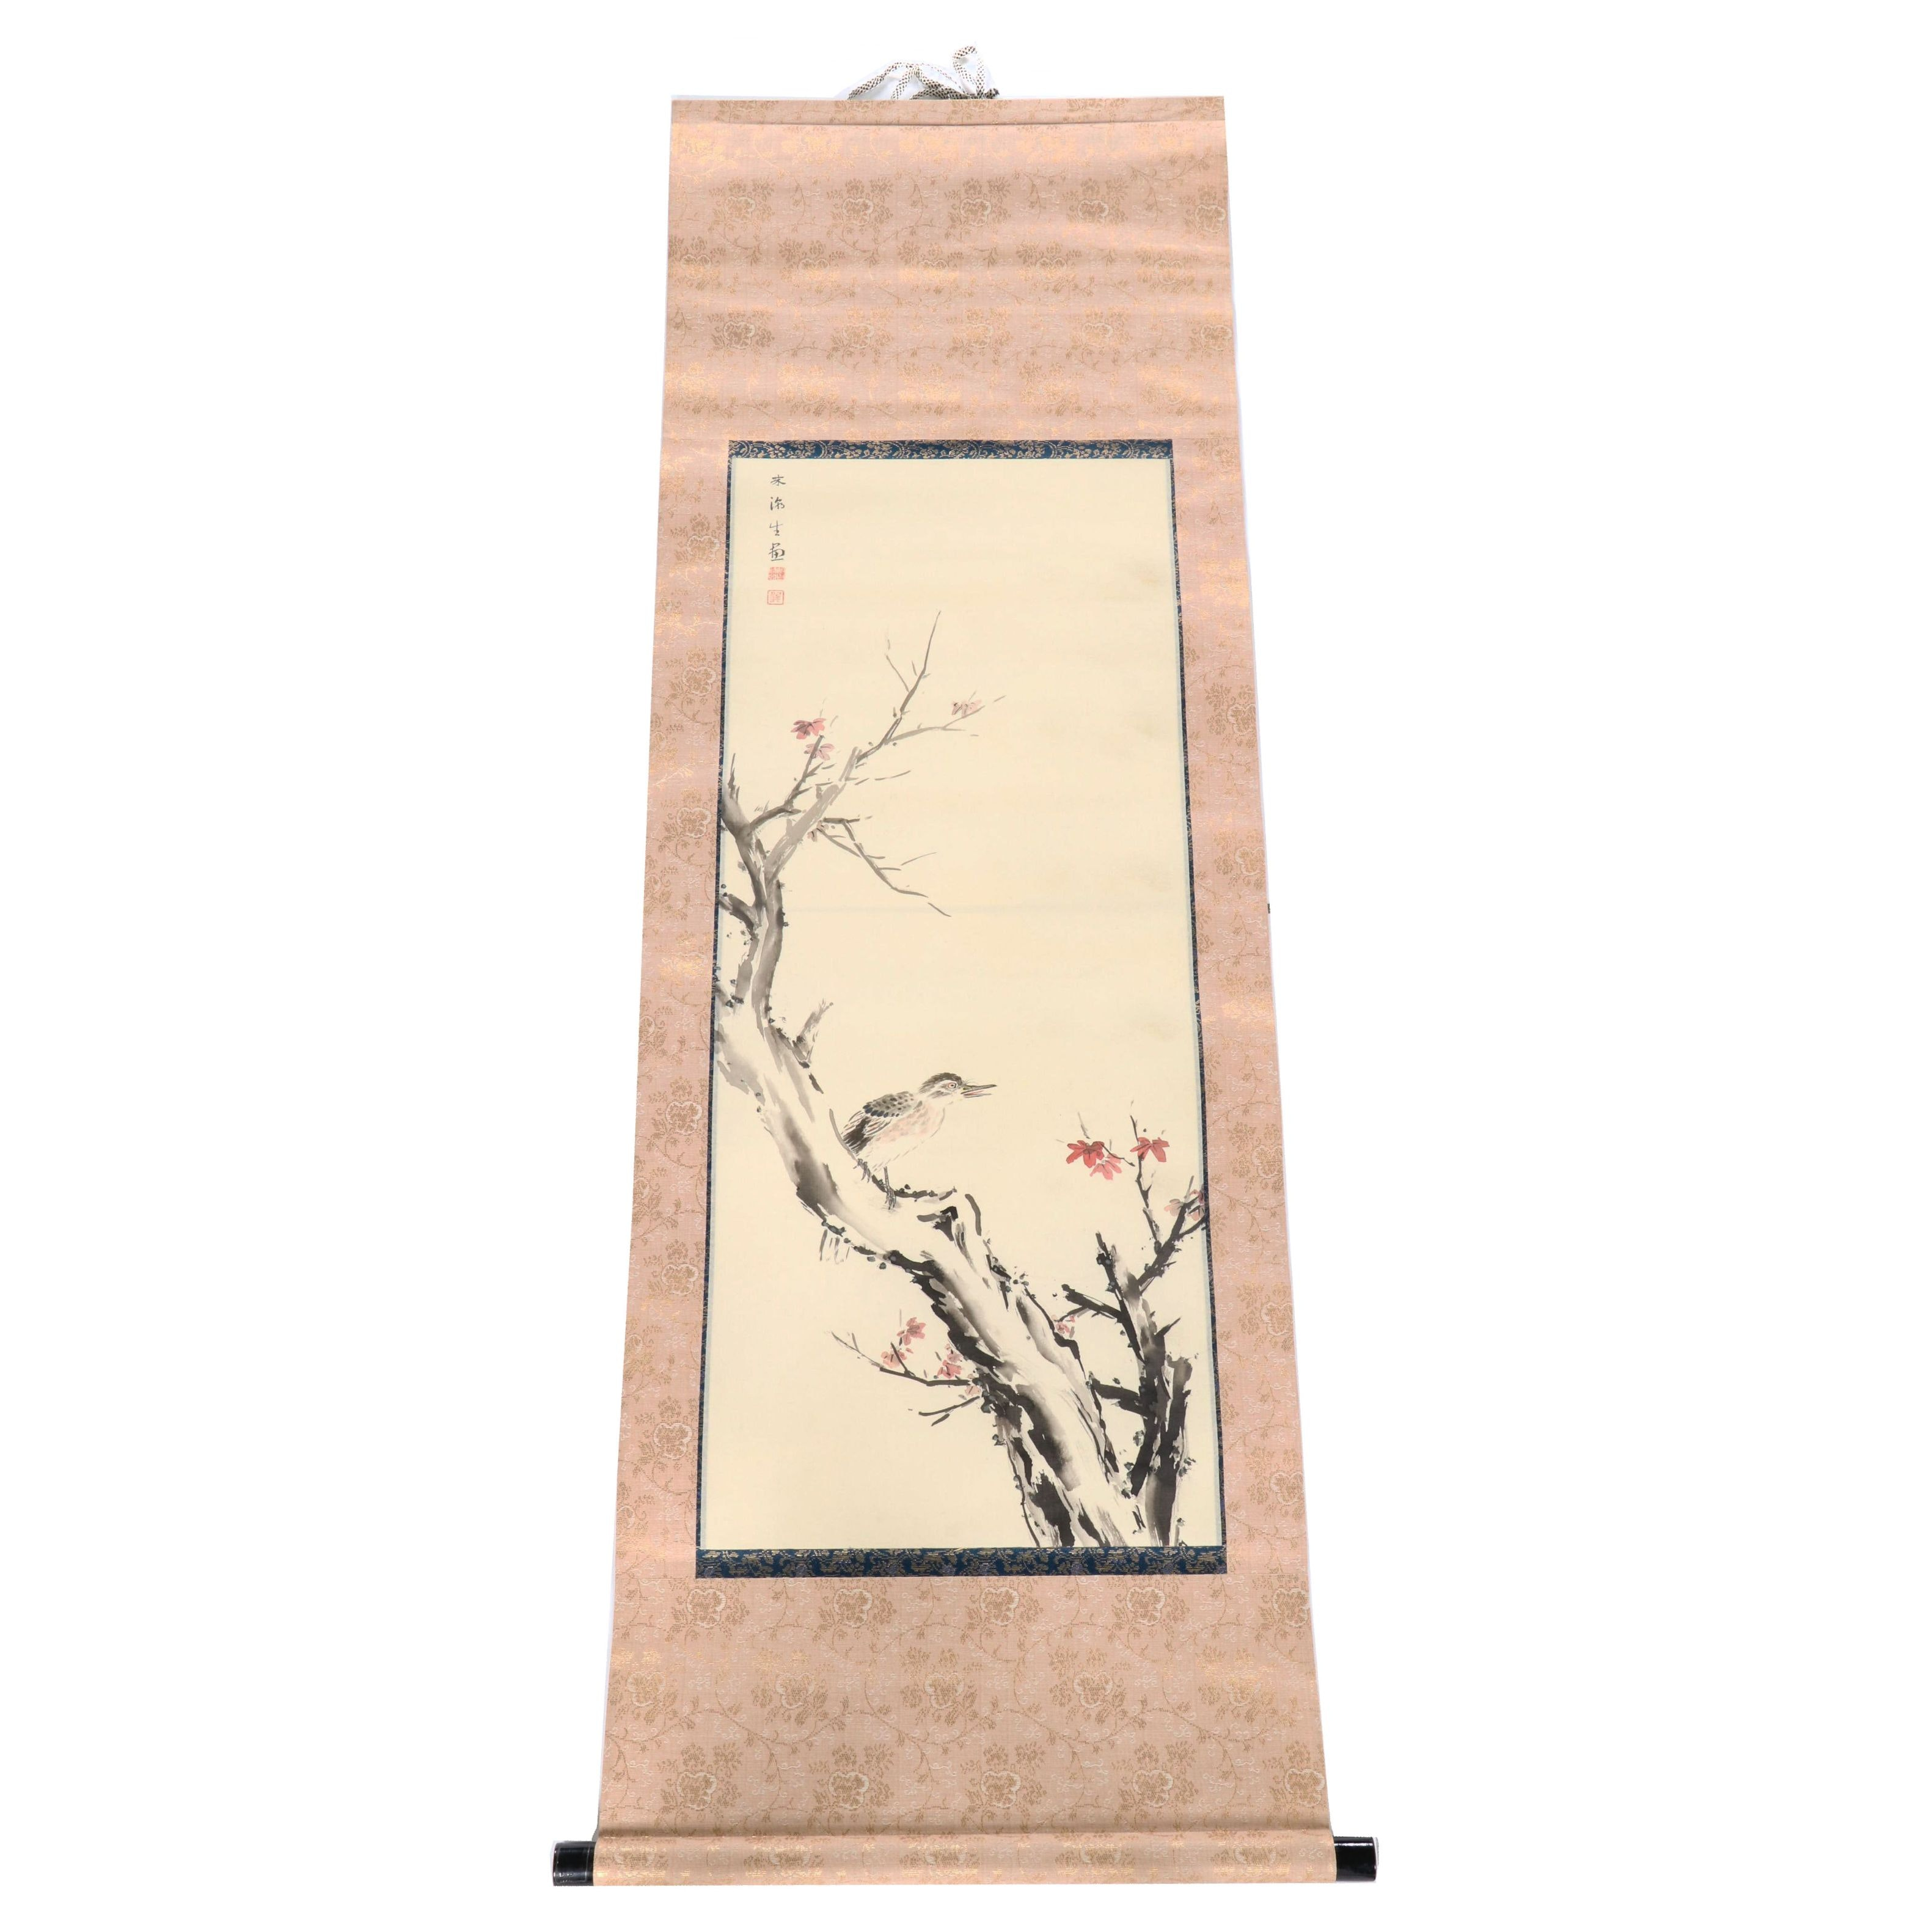 East Asian Ink and Watercolor Painting of Birds on Scroll